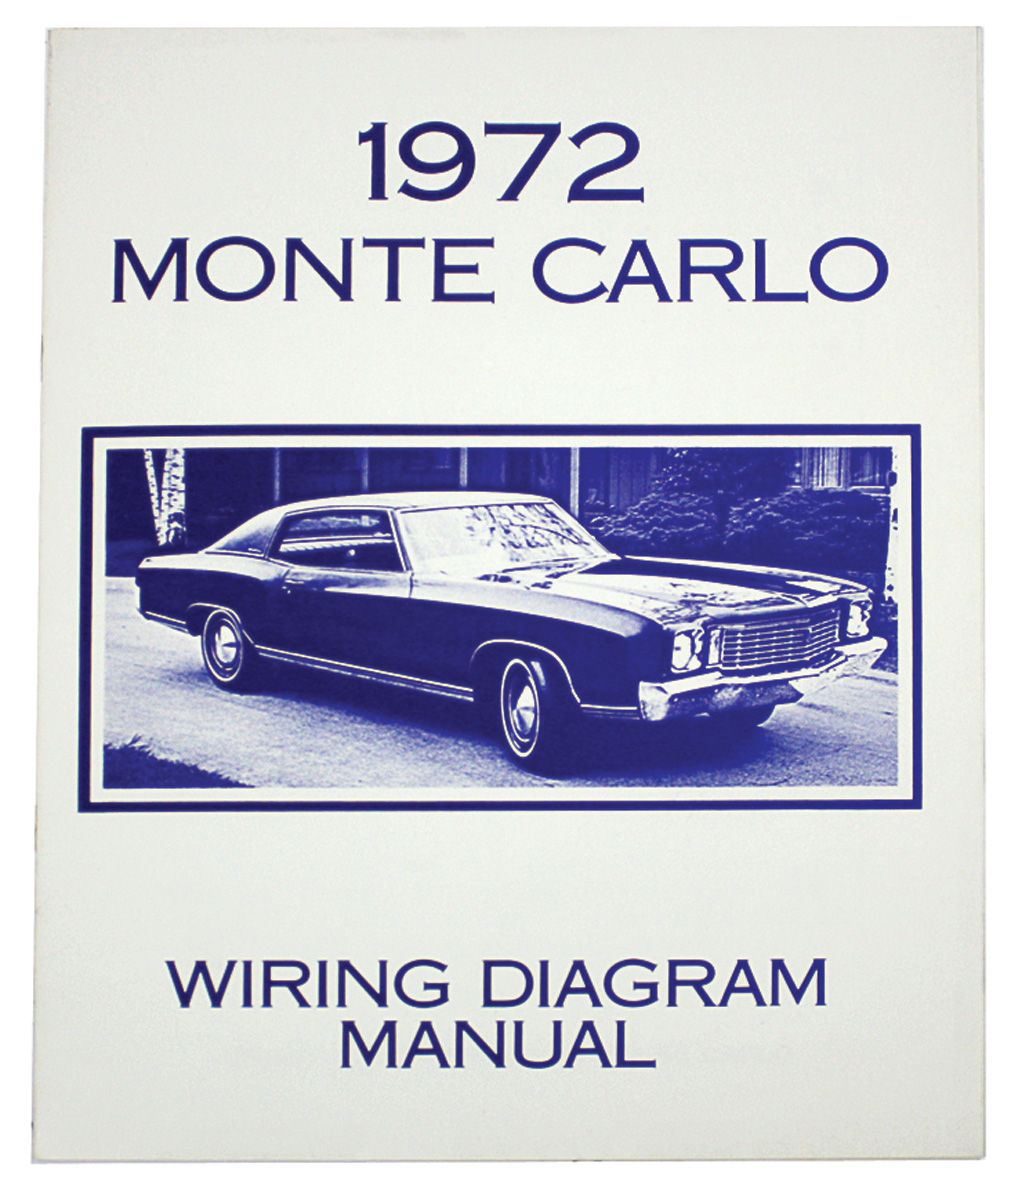 monte carlo wiring diagram manuals fits 1976 monte carlo. Black Bedroom Furniture Sets. Home Design Ideas